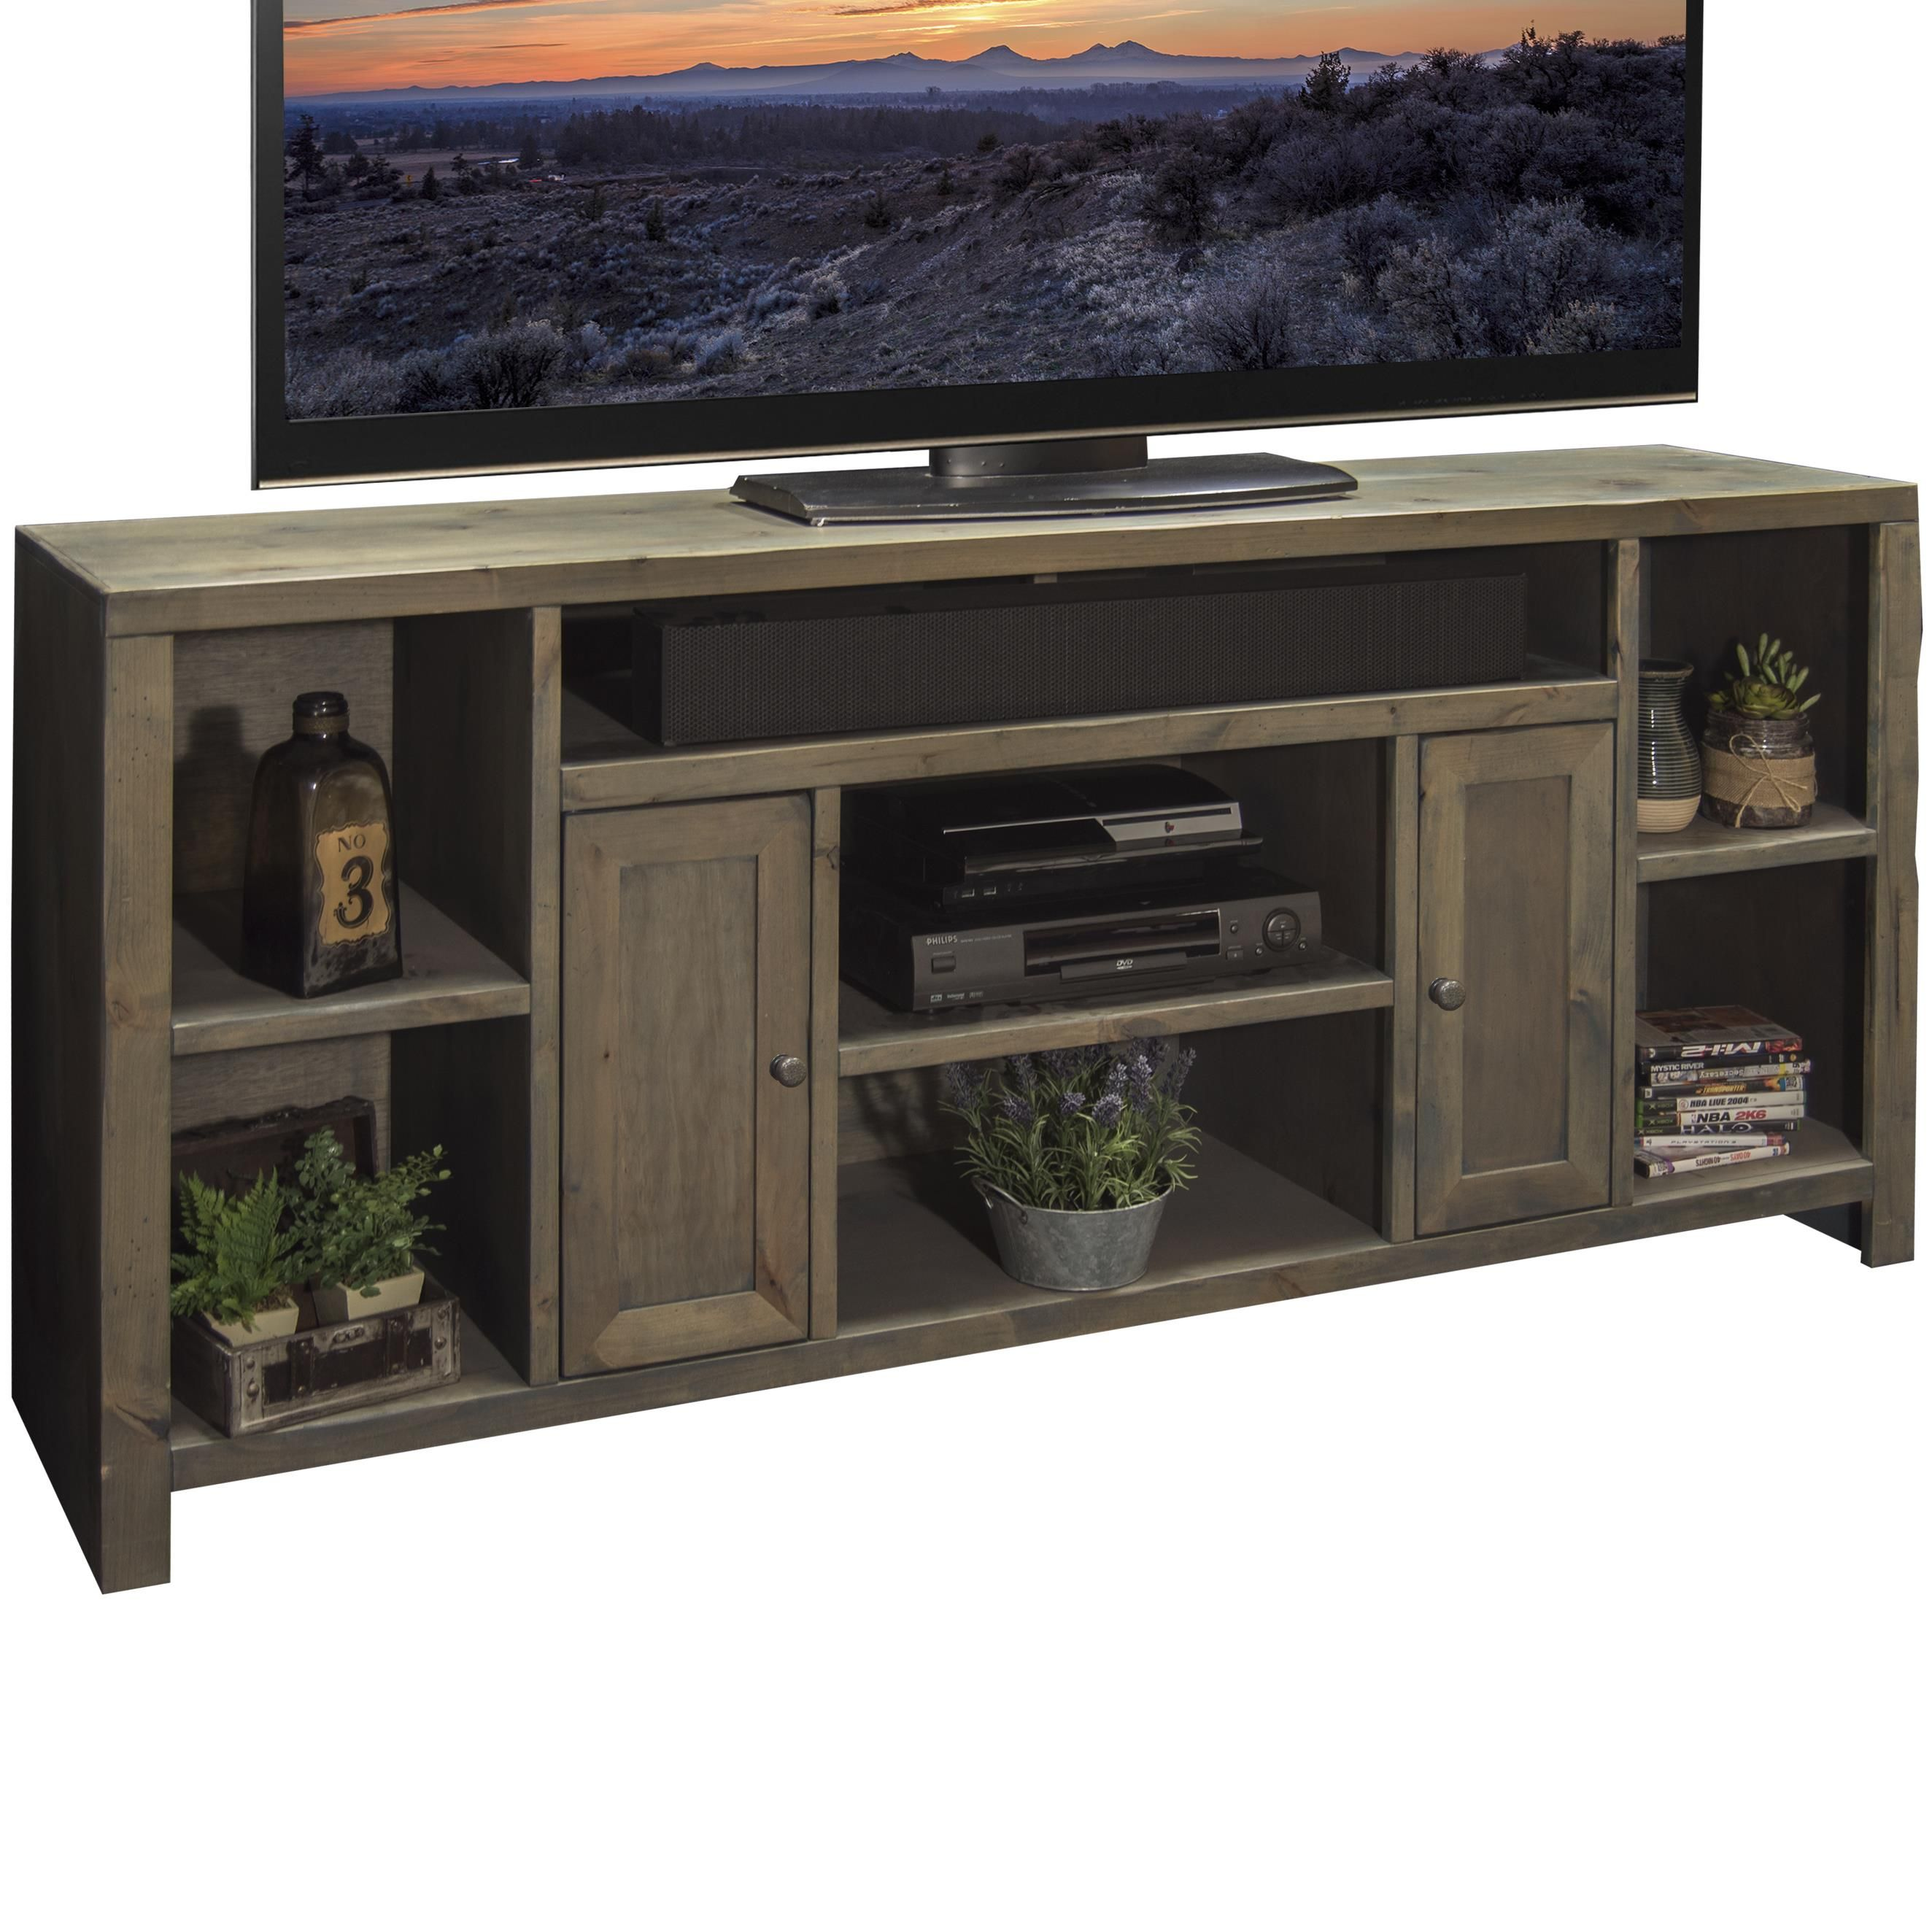 65 inch wood tv stand in 2020 Legends furniture, Tv